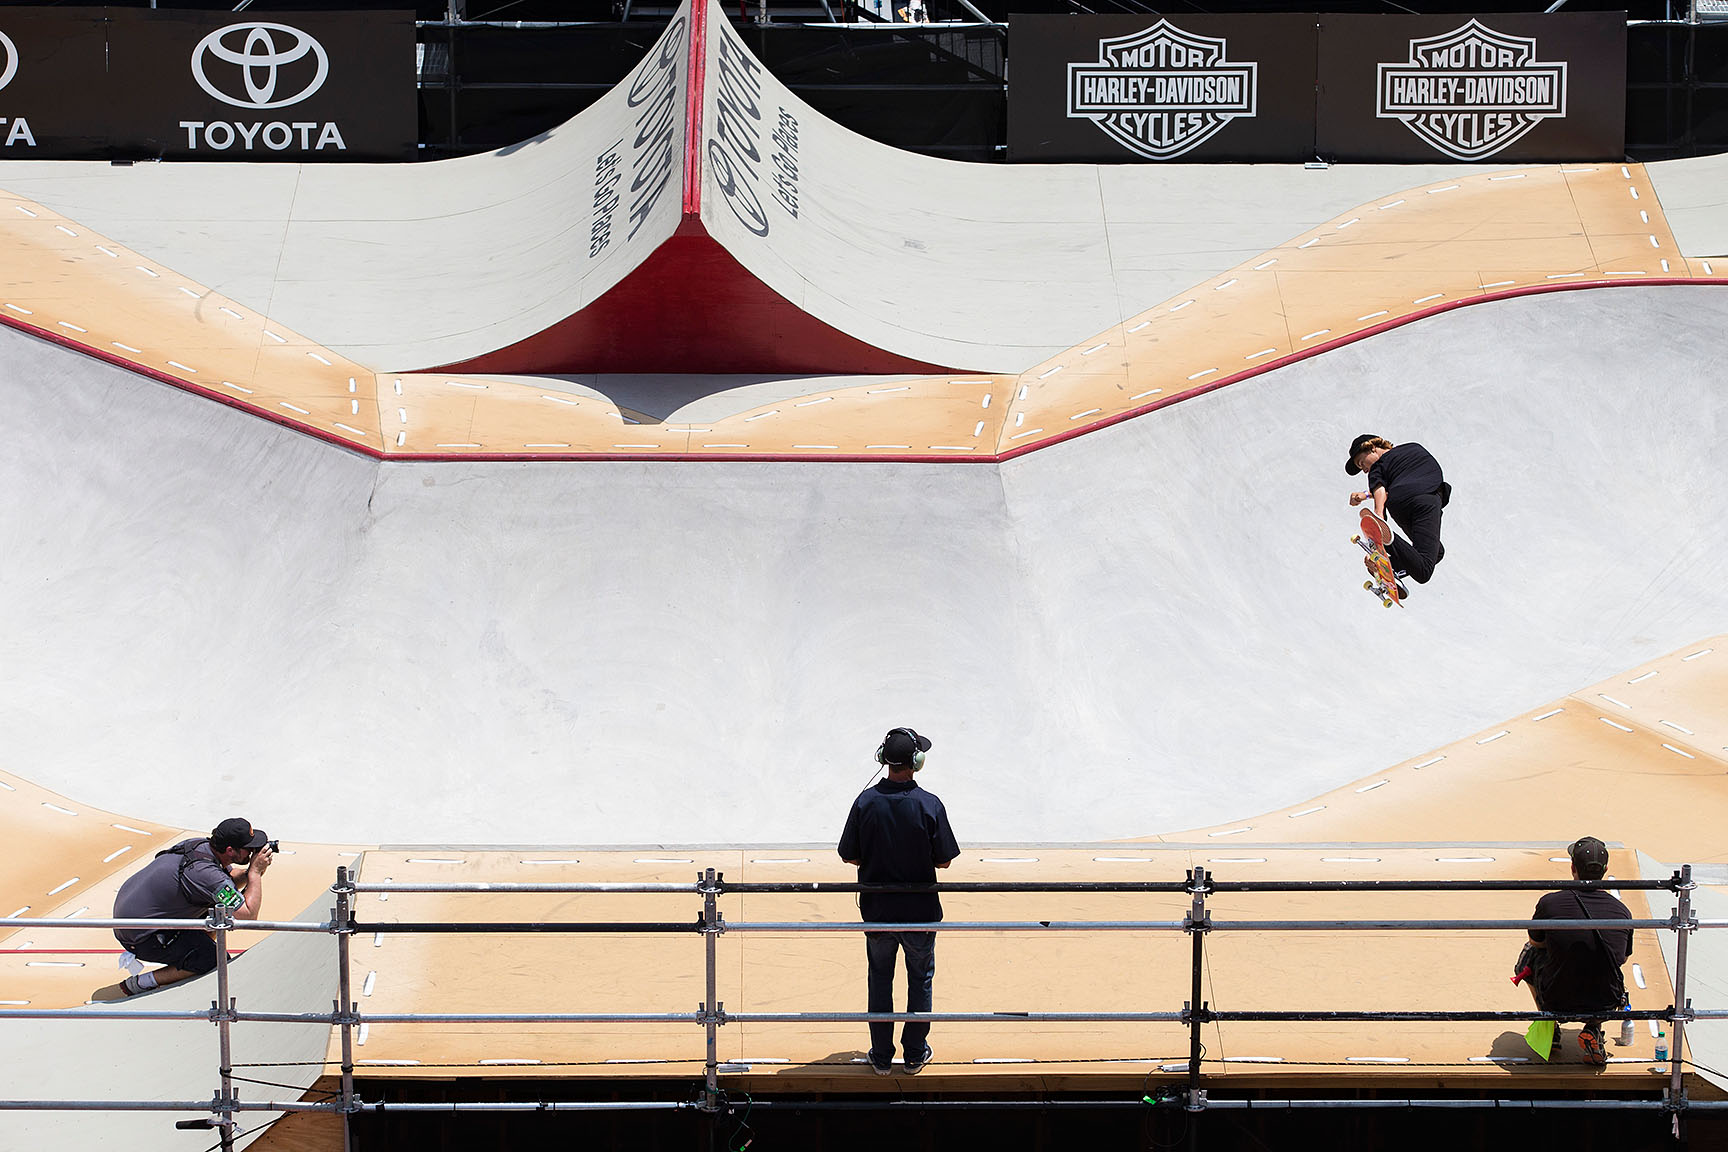 Coming into X Games Austin 2015, all eyes were on 2014 gold medalist Pedro Barros to repeat in Skateboard Park. Barros maintained his lead through the majority of the competition, until Curren Caples dropped in for his last run and scored the highest run of the day. Style, huge transfers and smooth landings all added to his second X Games gold medal win.